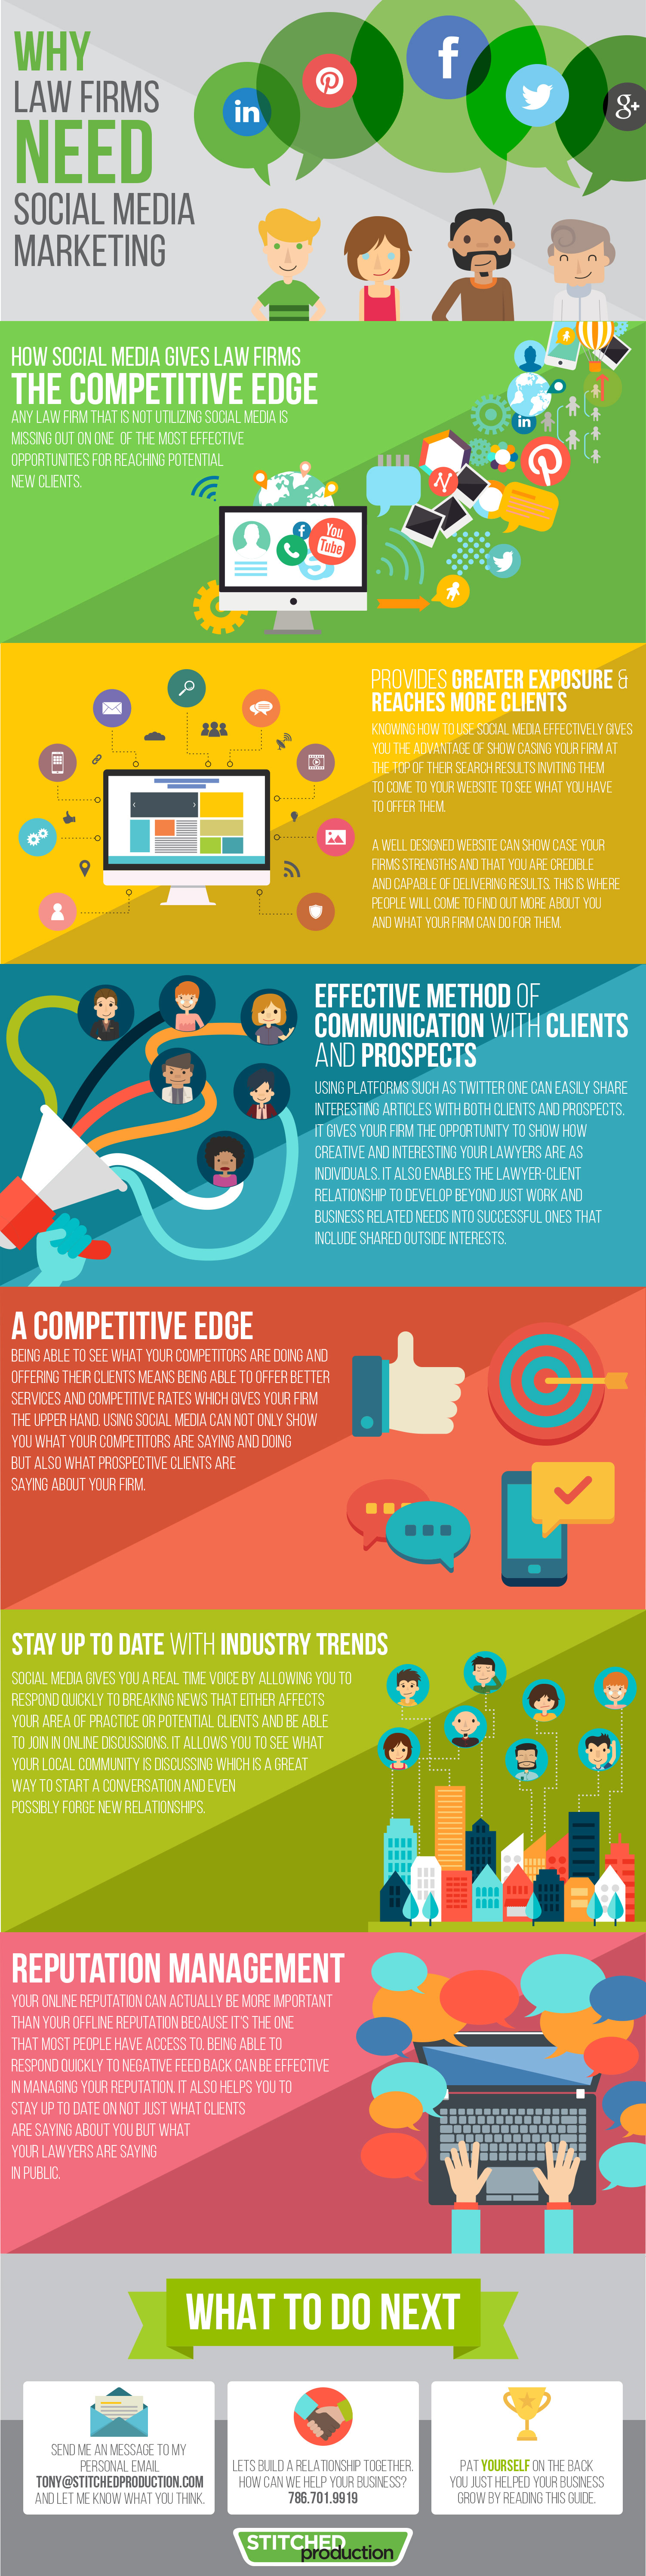 6 Tips Why Law Firms Need Social Media Marketing Infographic